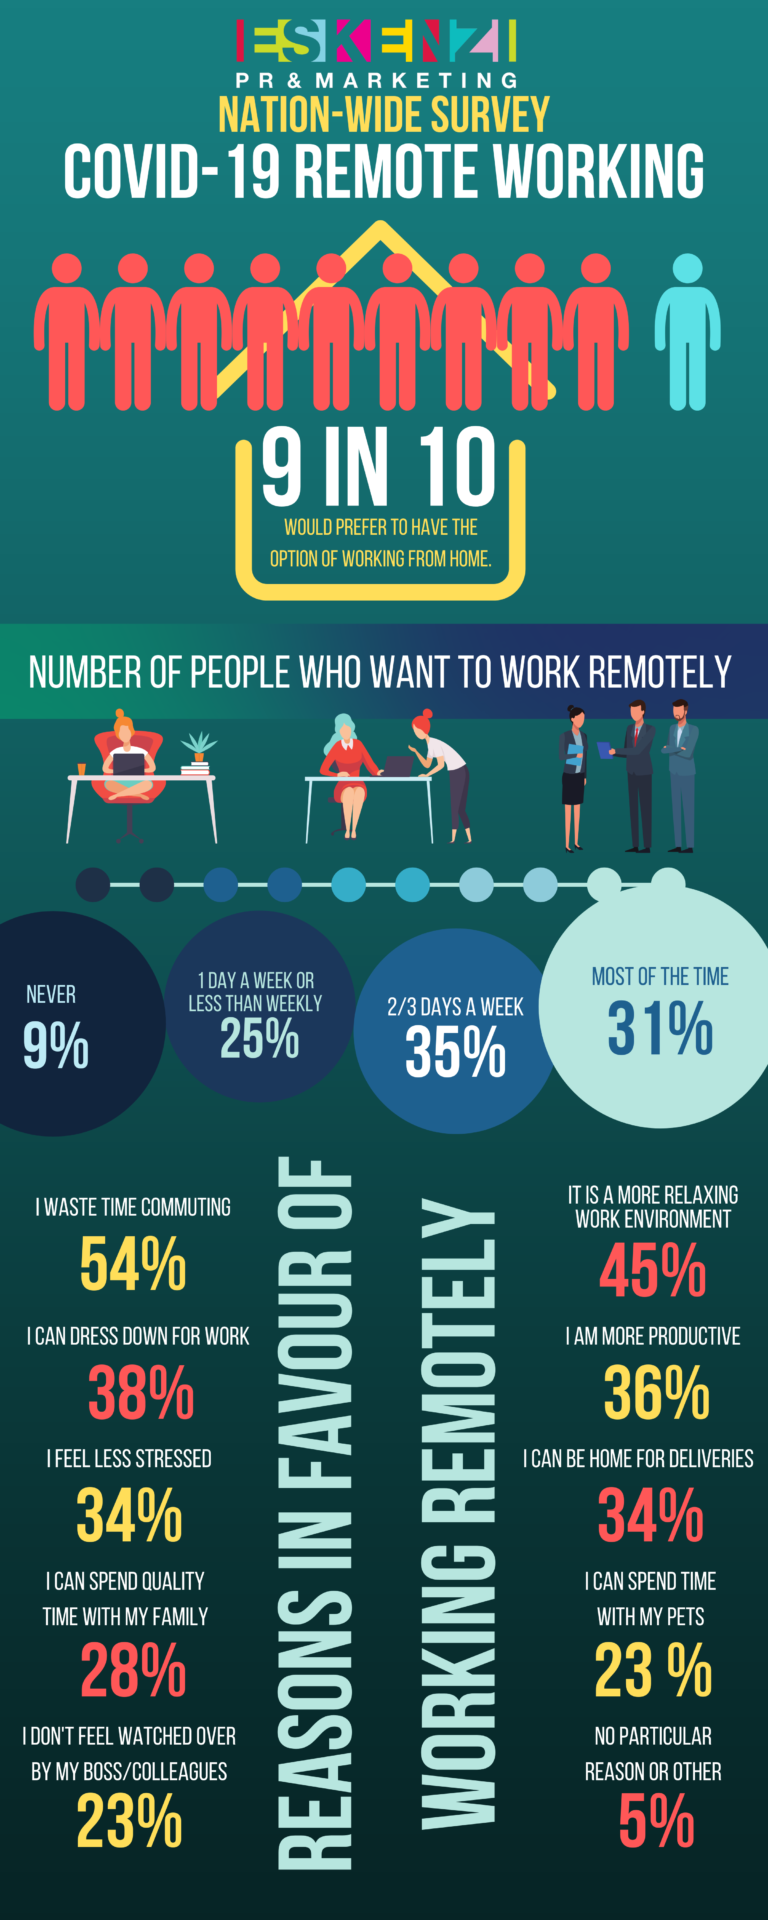 1 in 9 workers prefer to WFH